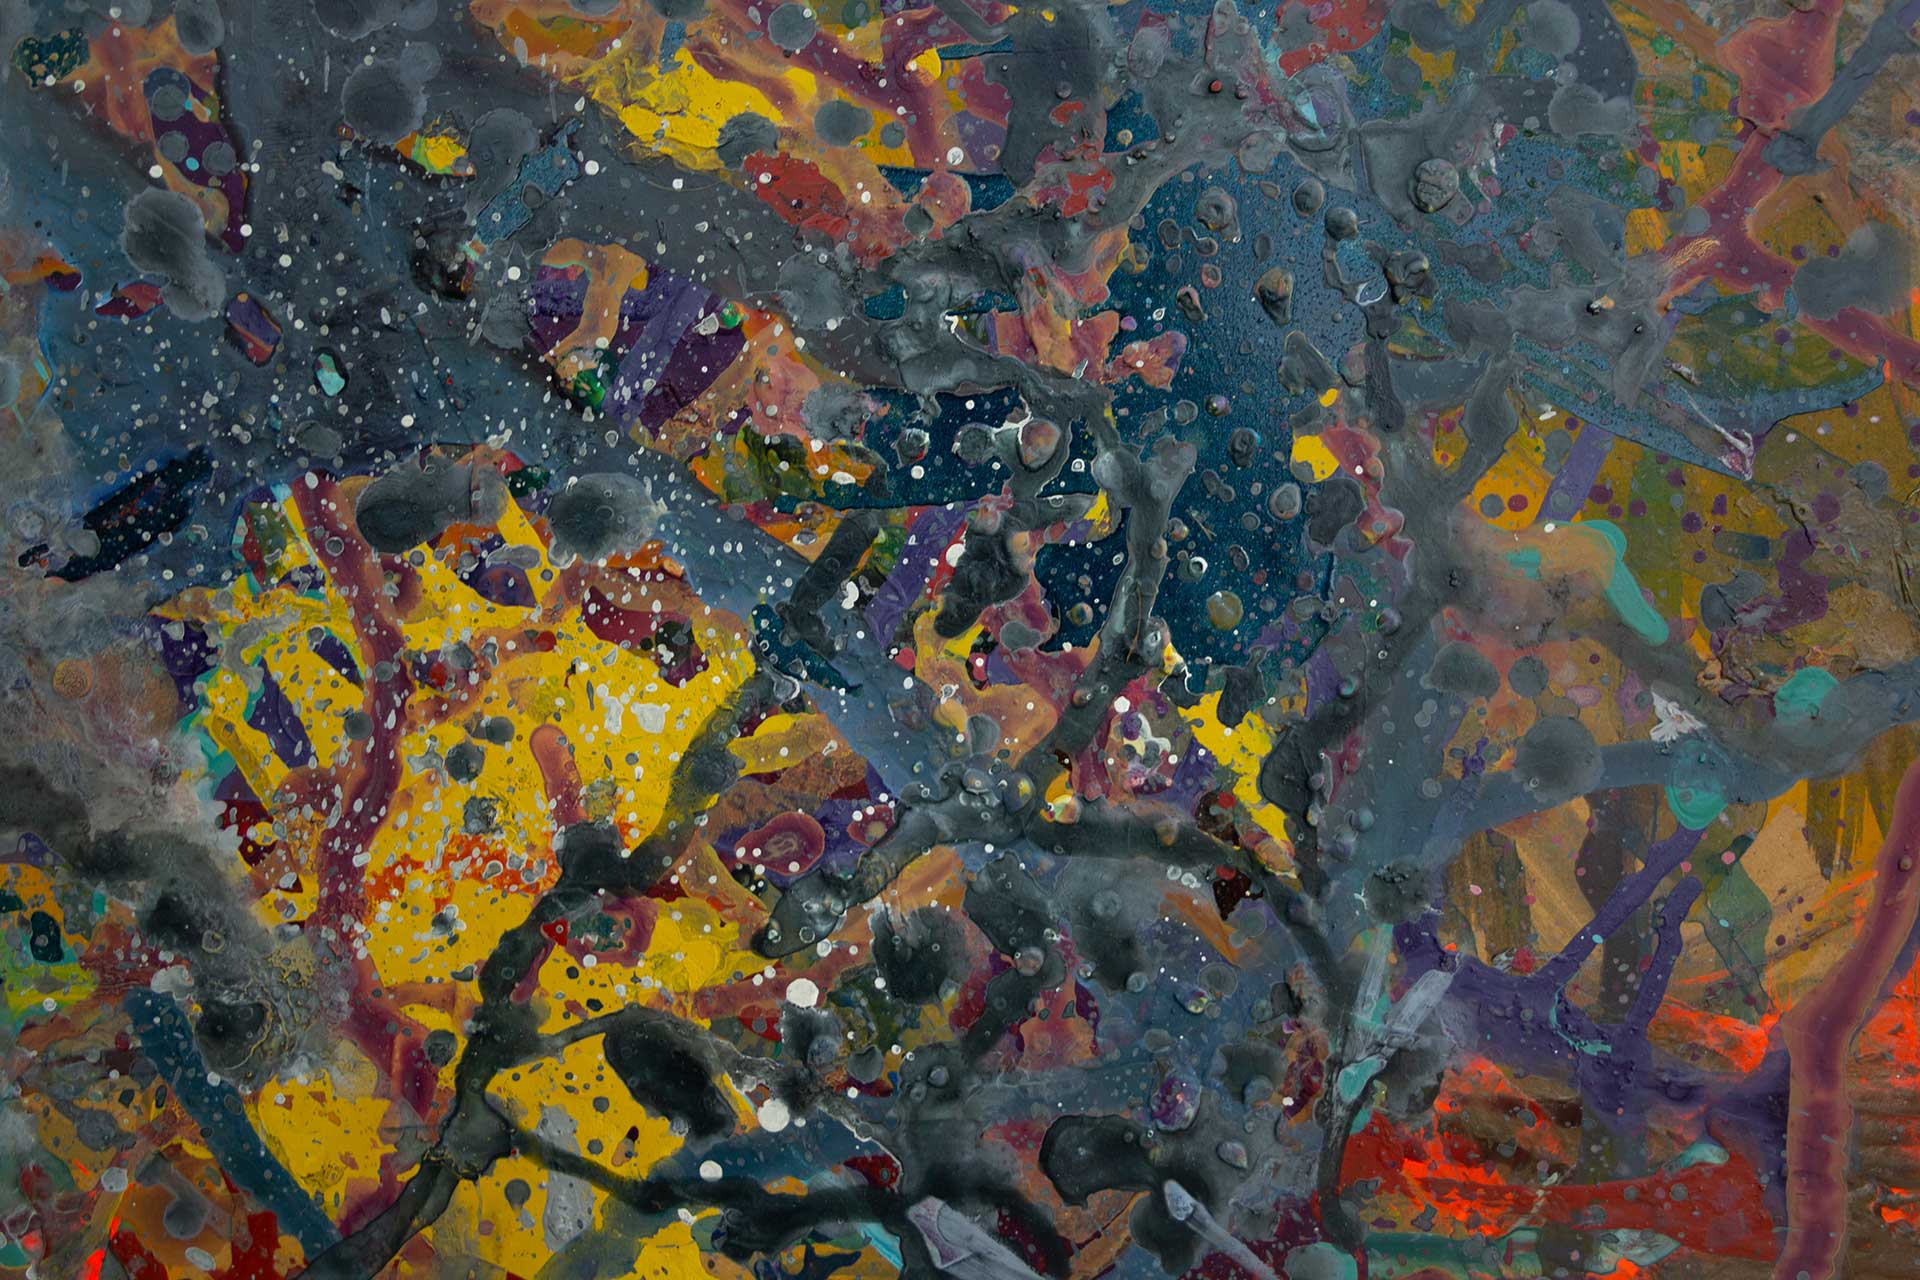 Abstract expressionism painting - Fight of the aliens #1 - Detail 4